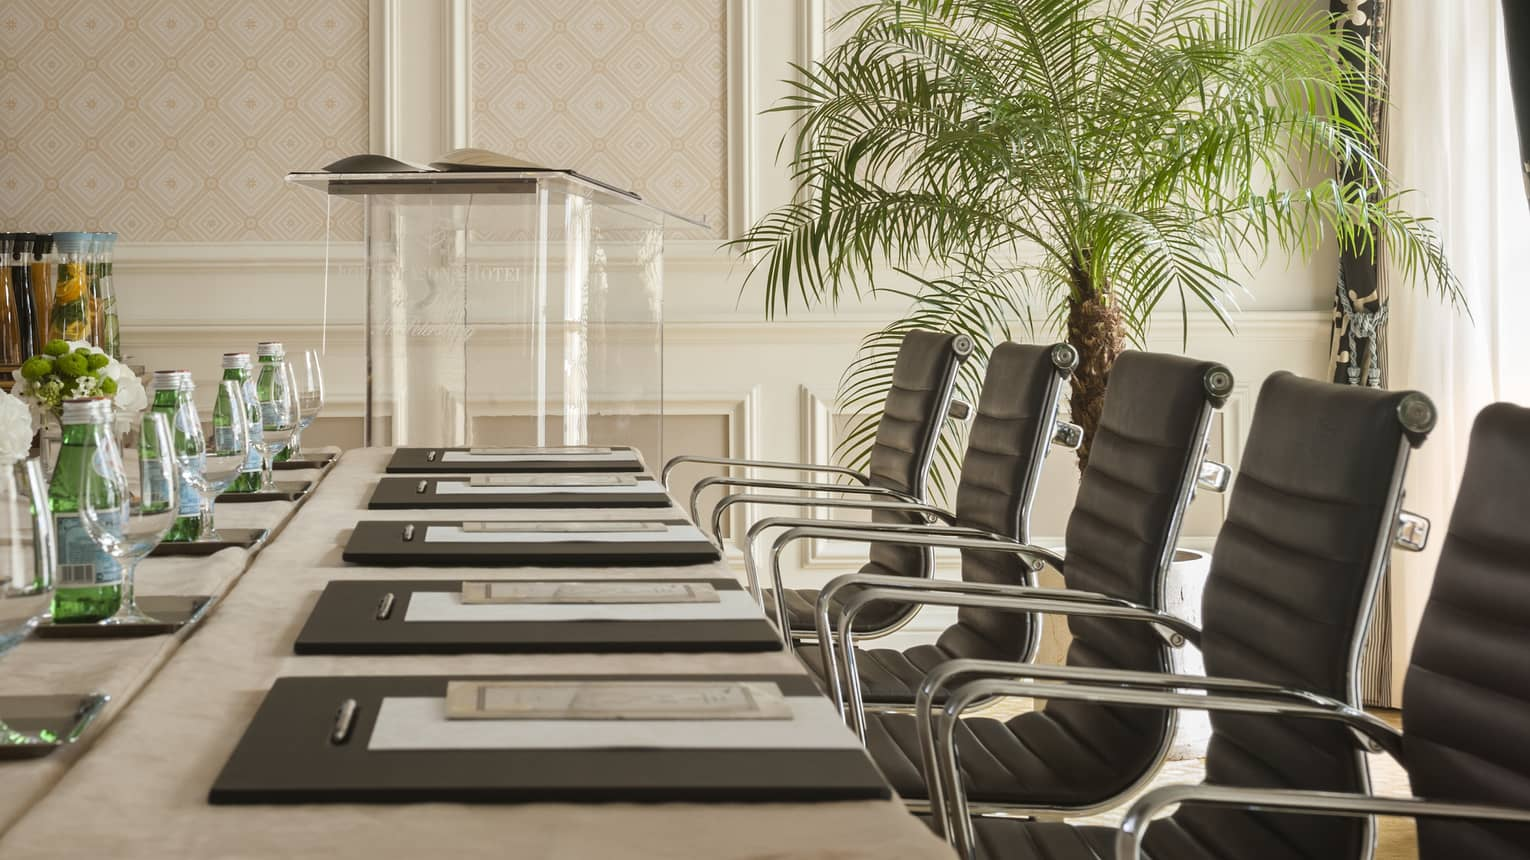 Phipps Room elegant boardroom meeting table lined with black executive chairs